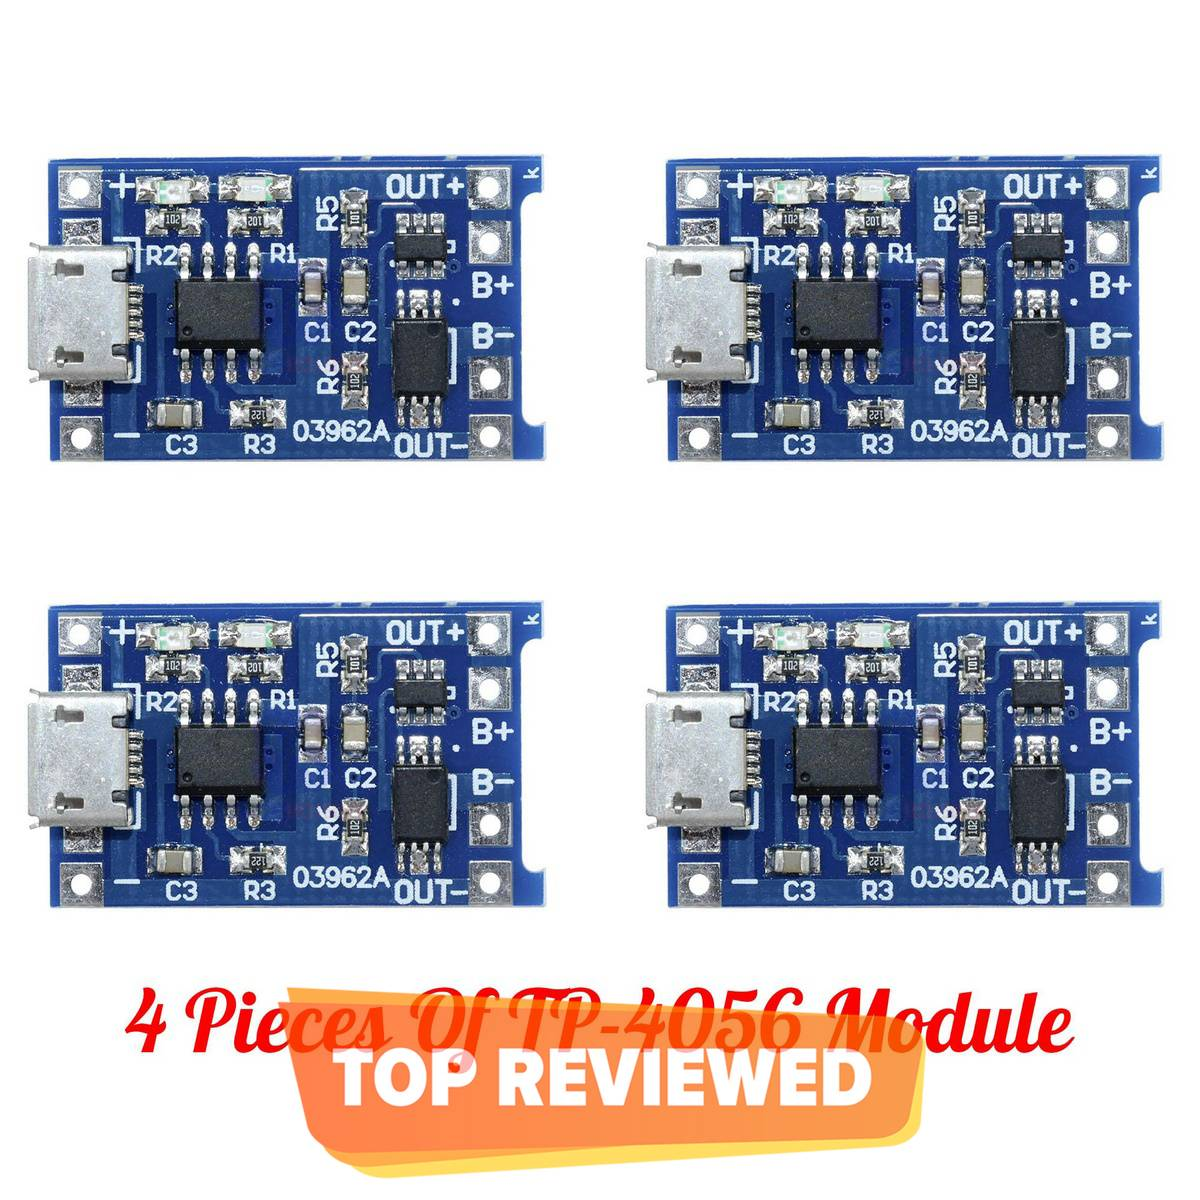 Pack Of 4 Pcs Of 18650 Micro USB 5V 1A Charging Module Tp4056 Lithium Ion Battery Charger Lithium Polymer Battery Charger Module Power Bank Circuit Board Power Bank Charging Module With Battery Protection